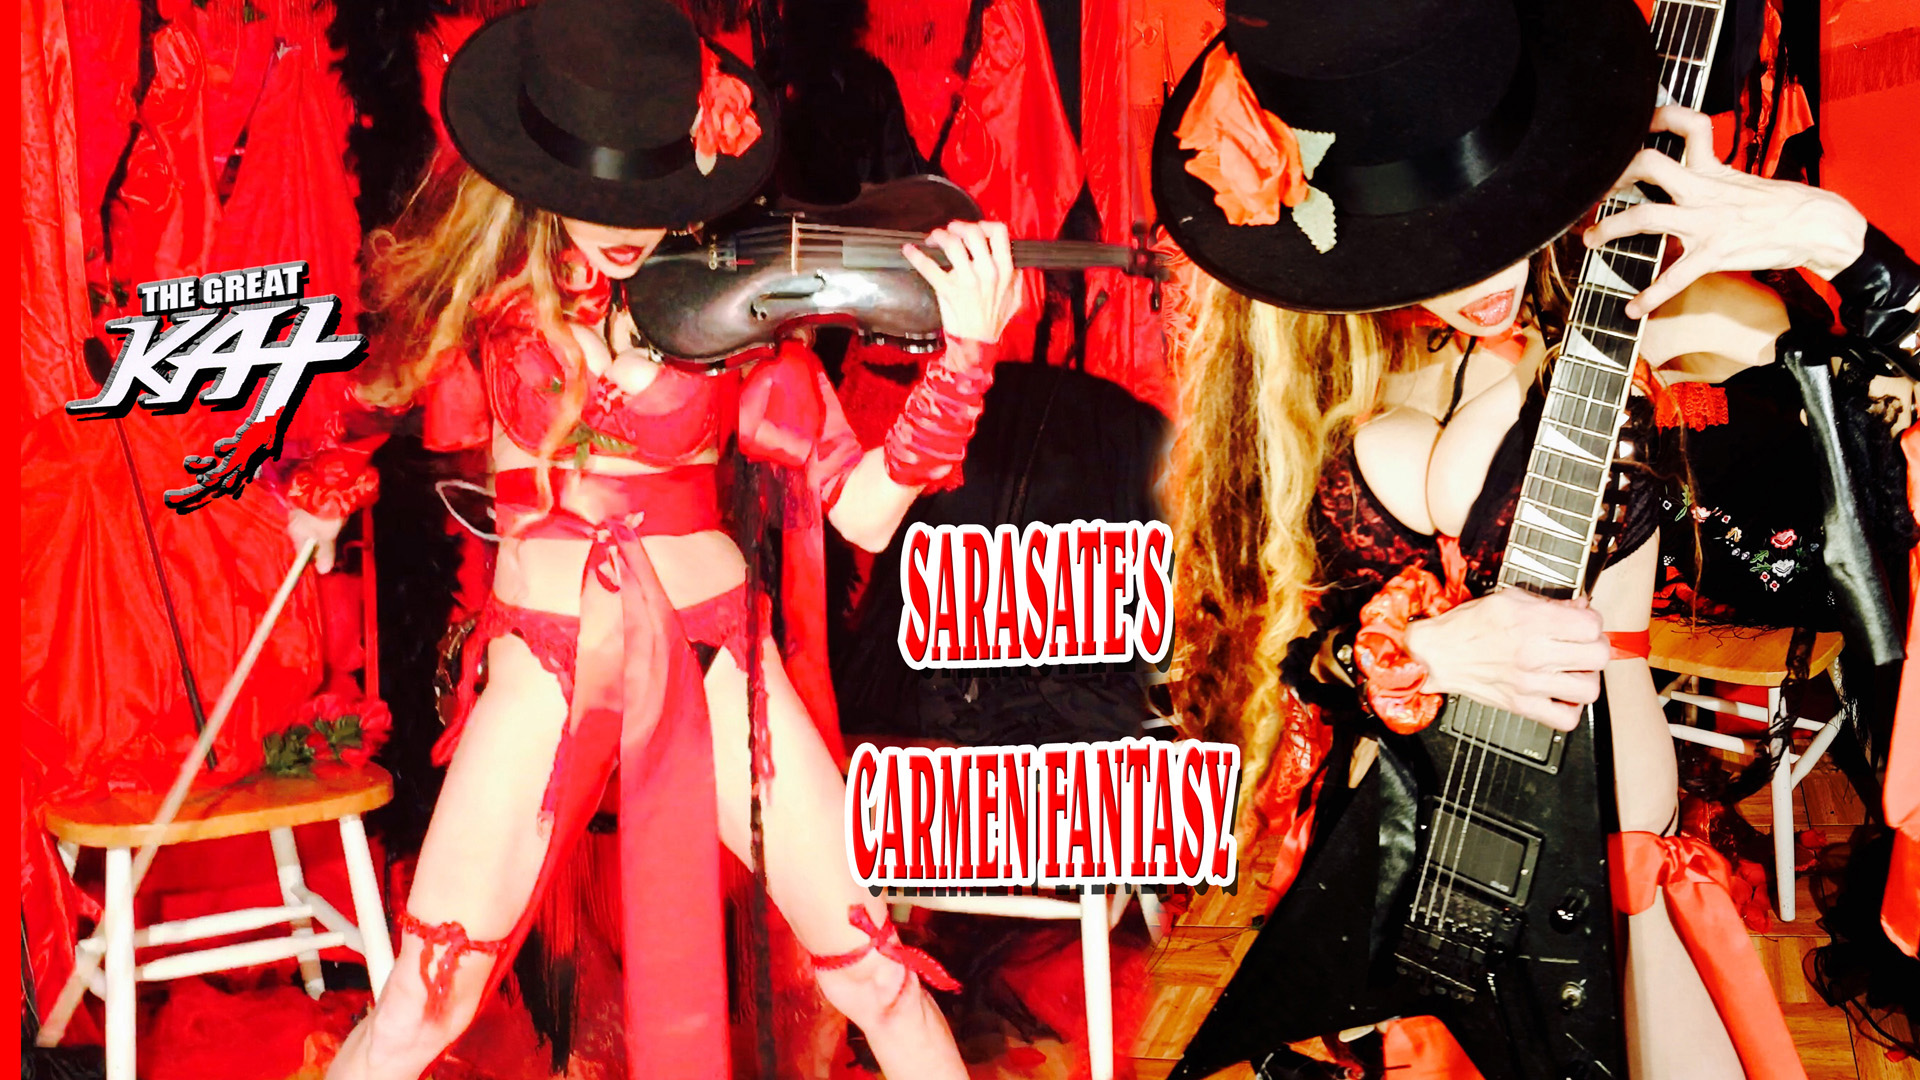 "OLE! ""CARMEN FANTASY"" starring THE GREAT KAT SHREDDING SENORITA, ARGENTINE TANGO & BULLFIGHTERS! Now PREMIERING on AMAZON! WATCH at https://www.amazon.com/dp/B079VV4NMC Starting with Carmen's famous Habanera song of seduction, The Great Kat gives Carmen the shred treatment with Carmen & Don Jose dancing an Argentine Tango. Matadors and bullfighters fight charging bulls, while the world's fastest guitar/violin shredder, The Great Kat shreds at lightning speeds."